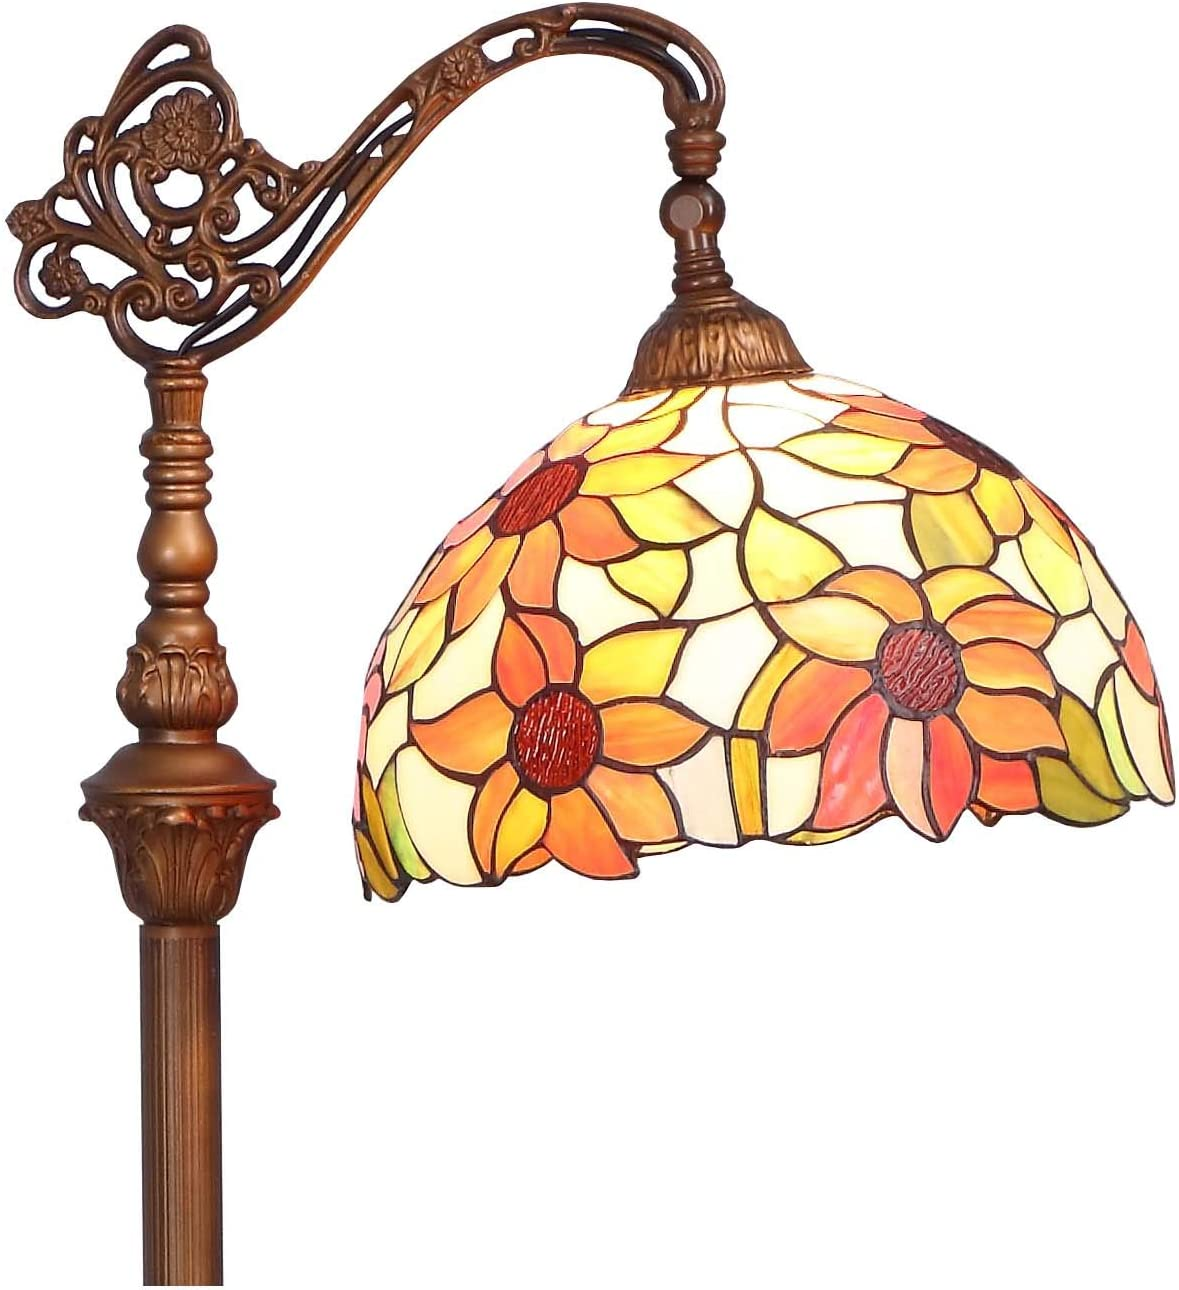 Bieye L10515 Orange Sunflower Tiffany Style Stained Glass Reading Floor Lamp with 12 inch Wide Shade, Light Direction is Adjustable, 65 inch Tall